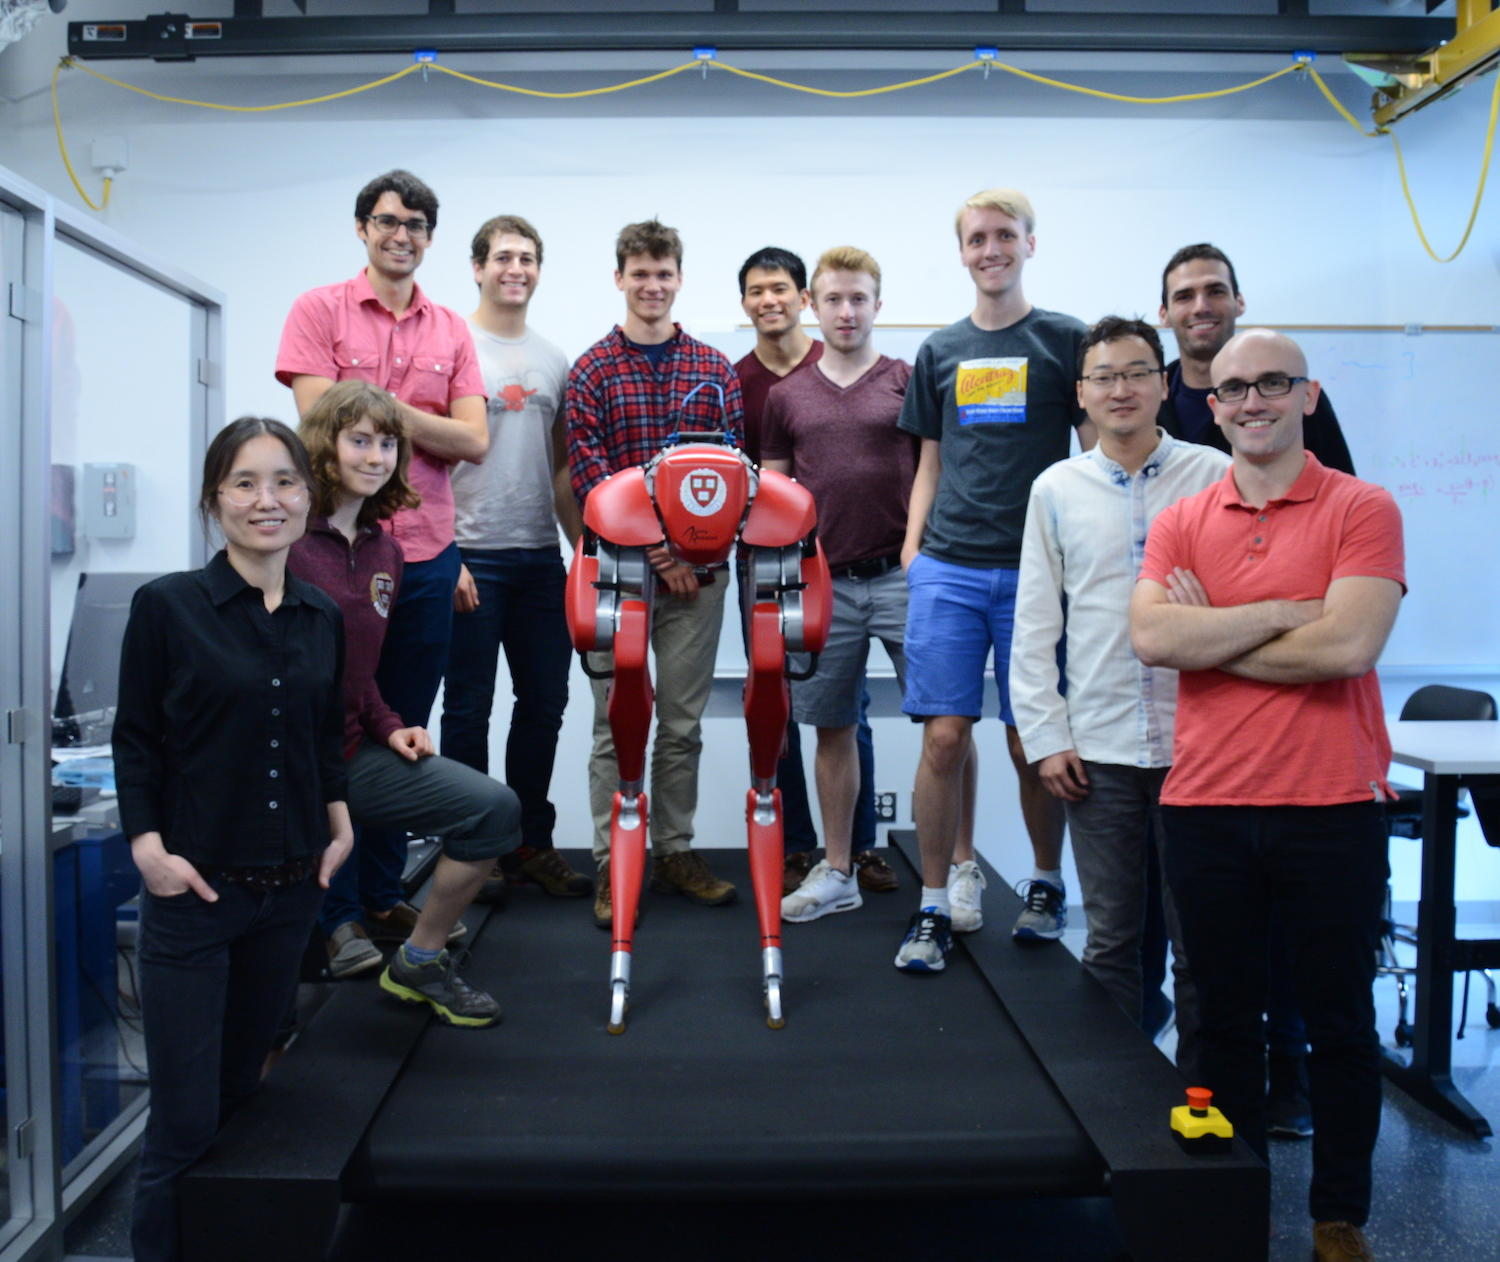 Agile Robotics Lab members with Cassie